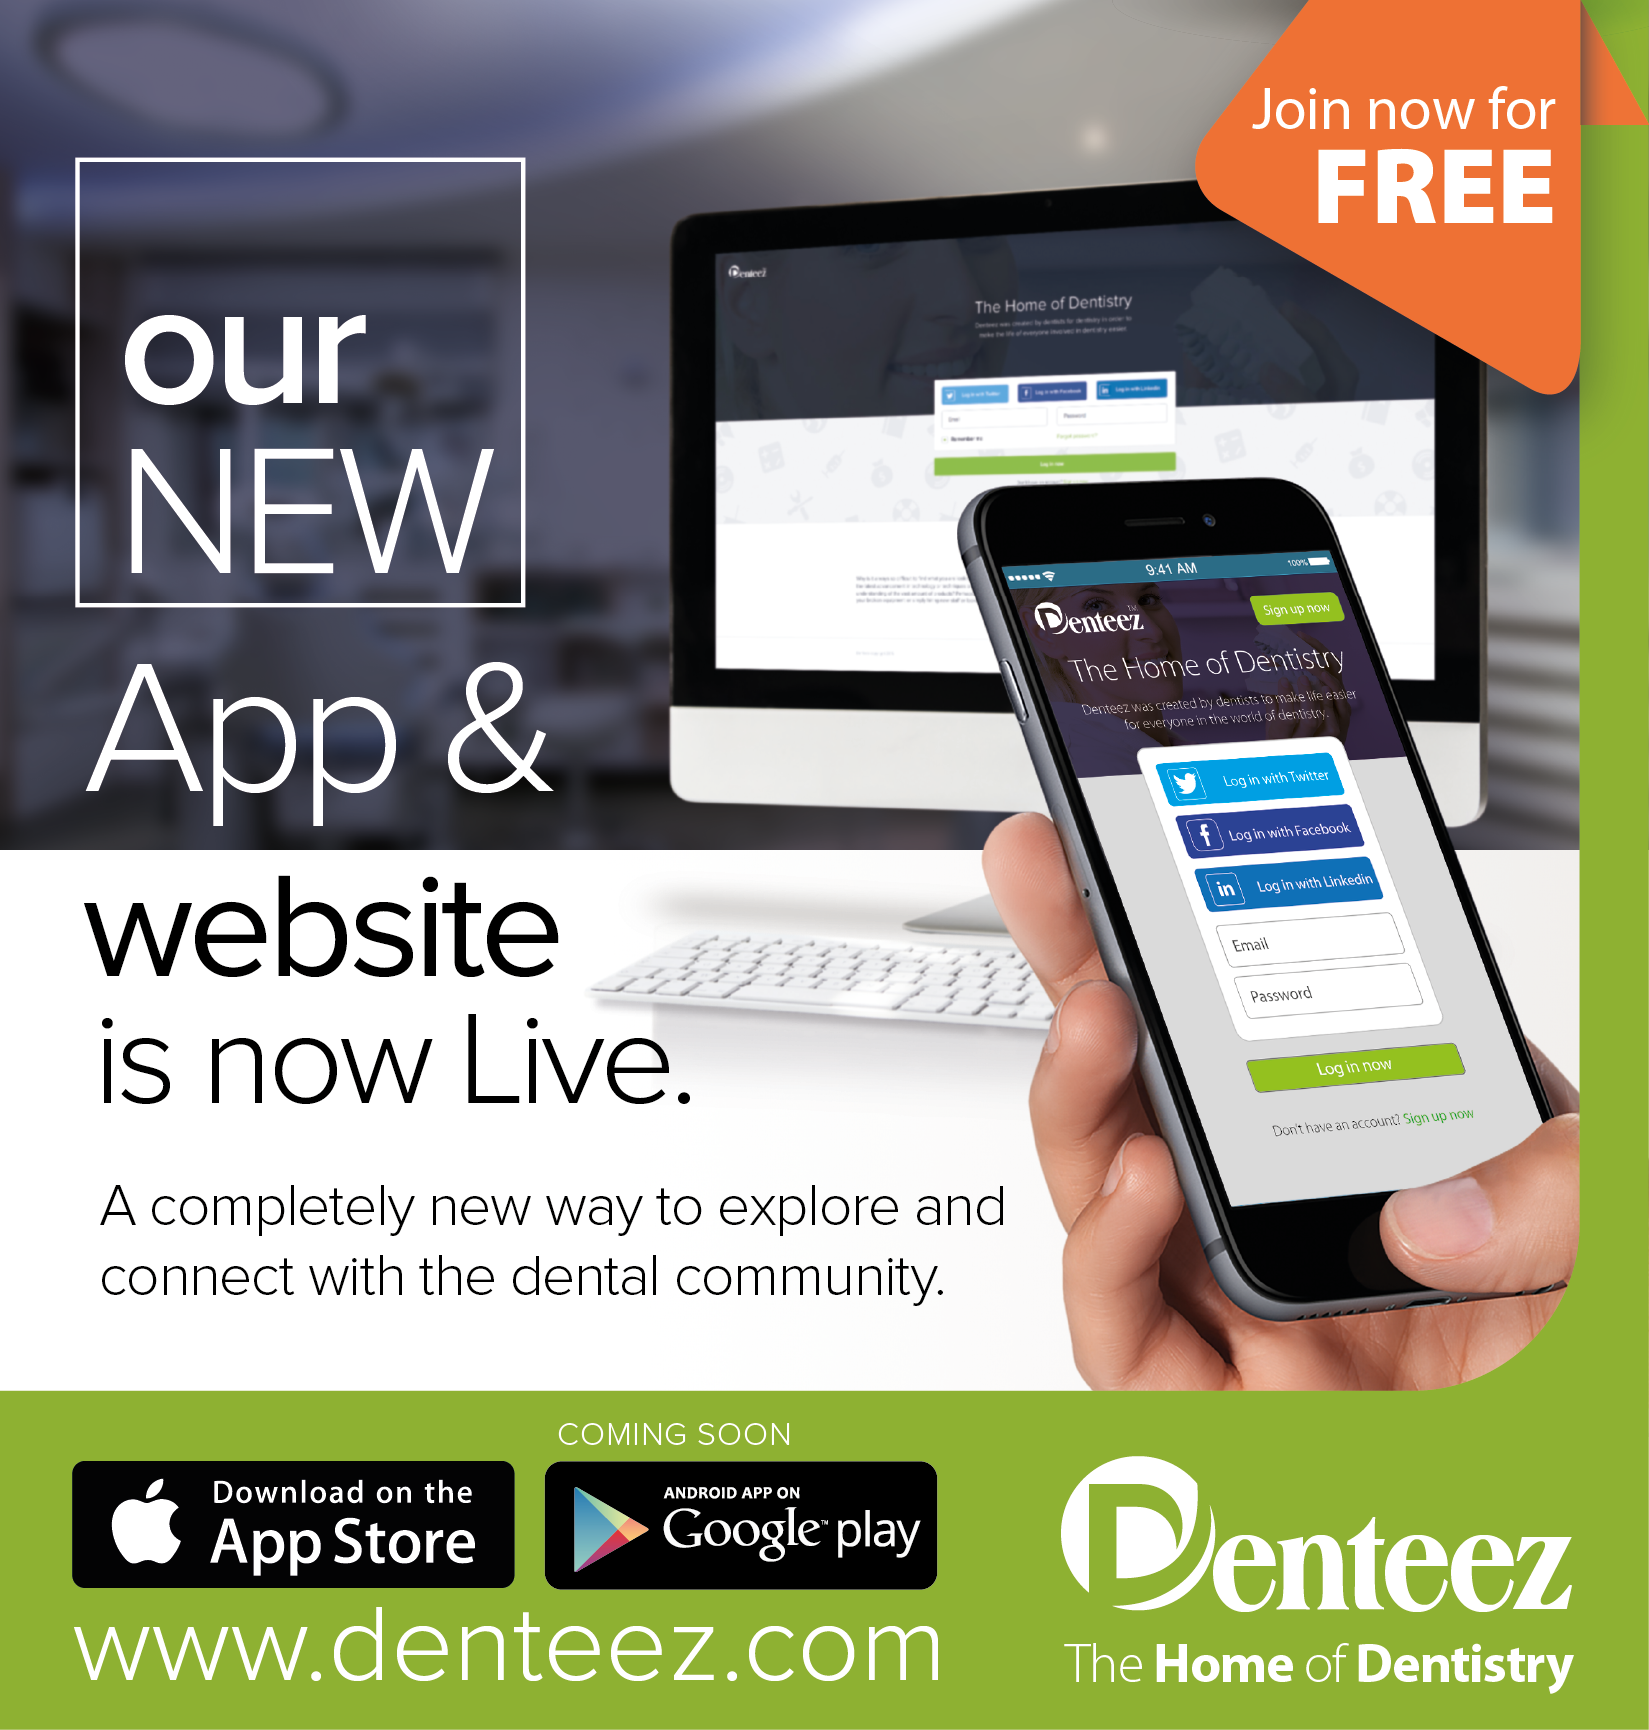 Professional networking for dentistry - www.denteez.com #dentistry #Denteez #DentalApp